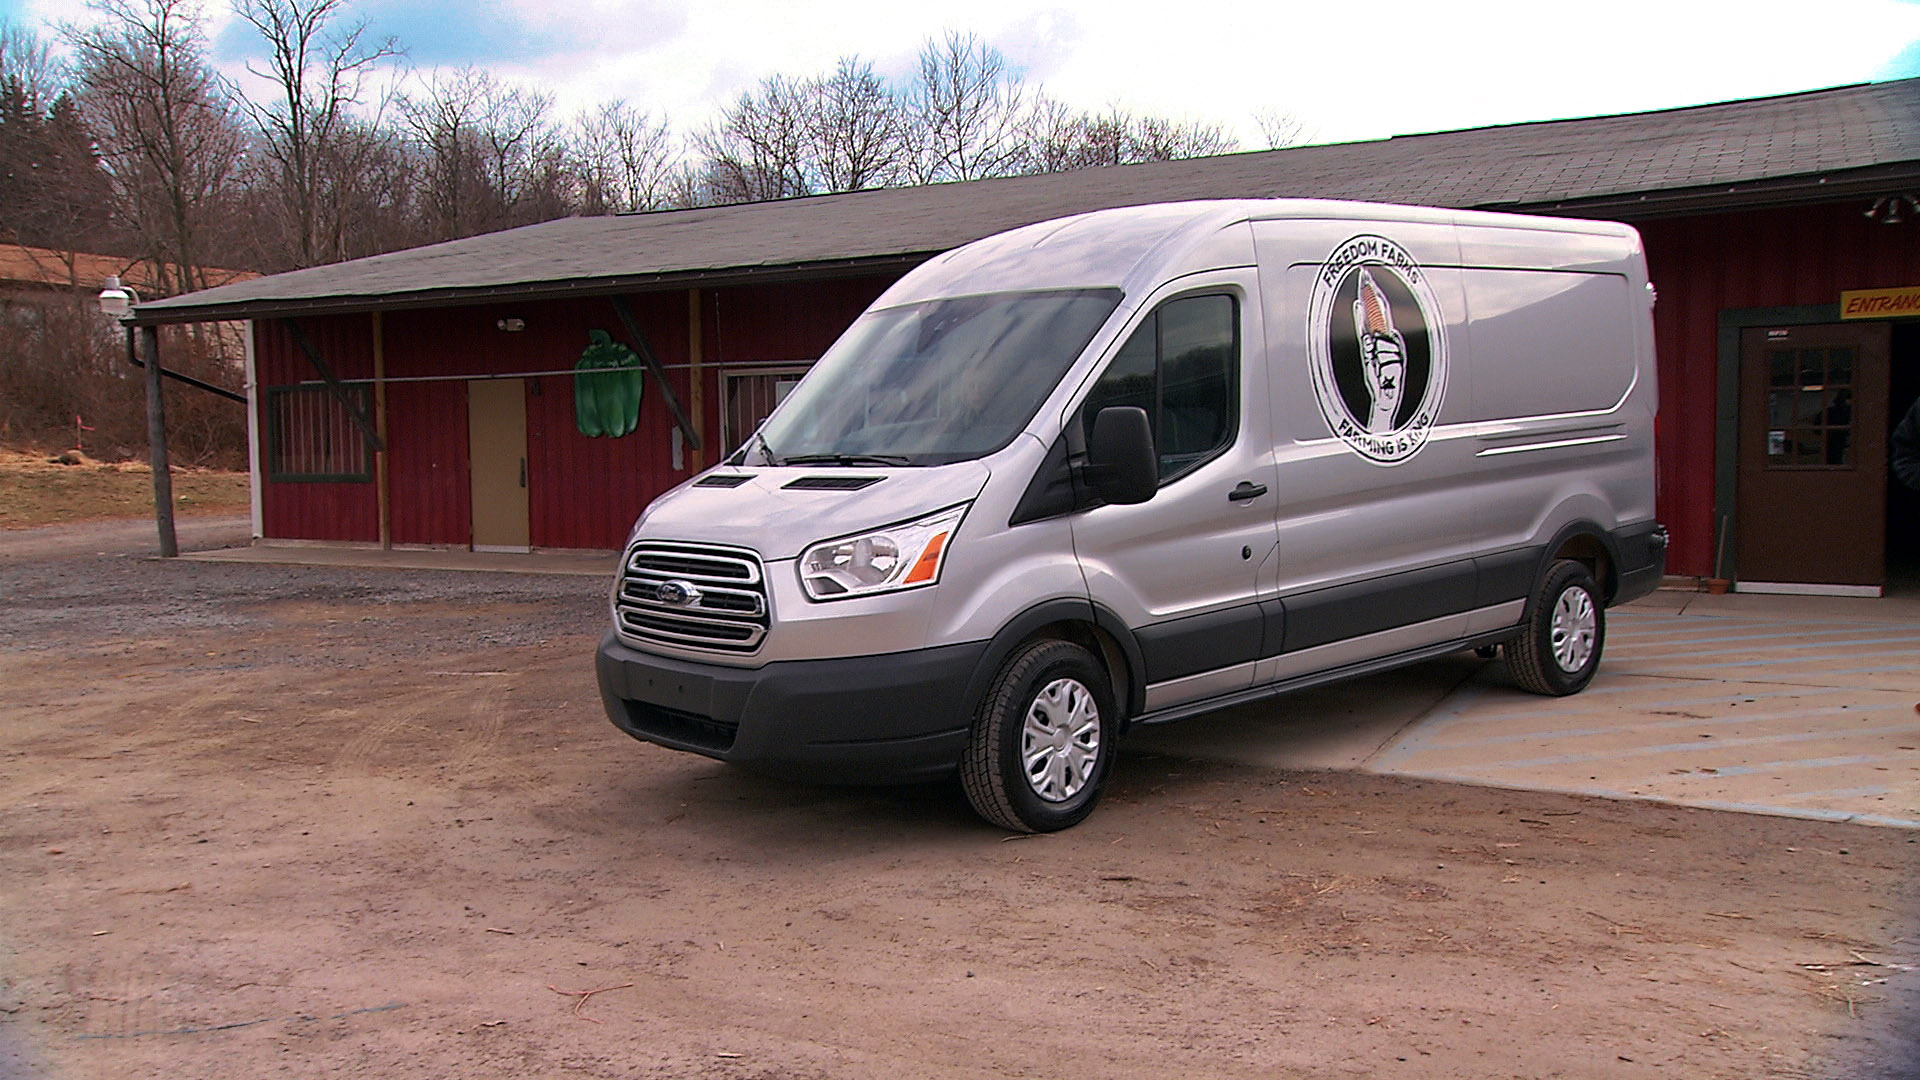 Ford Transit 150 Cargo Van >> 2015 Ford Transit Gets Down on the Farm - autoevolution